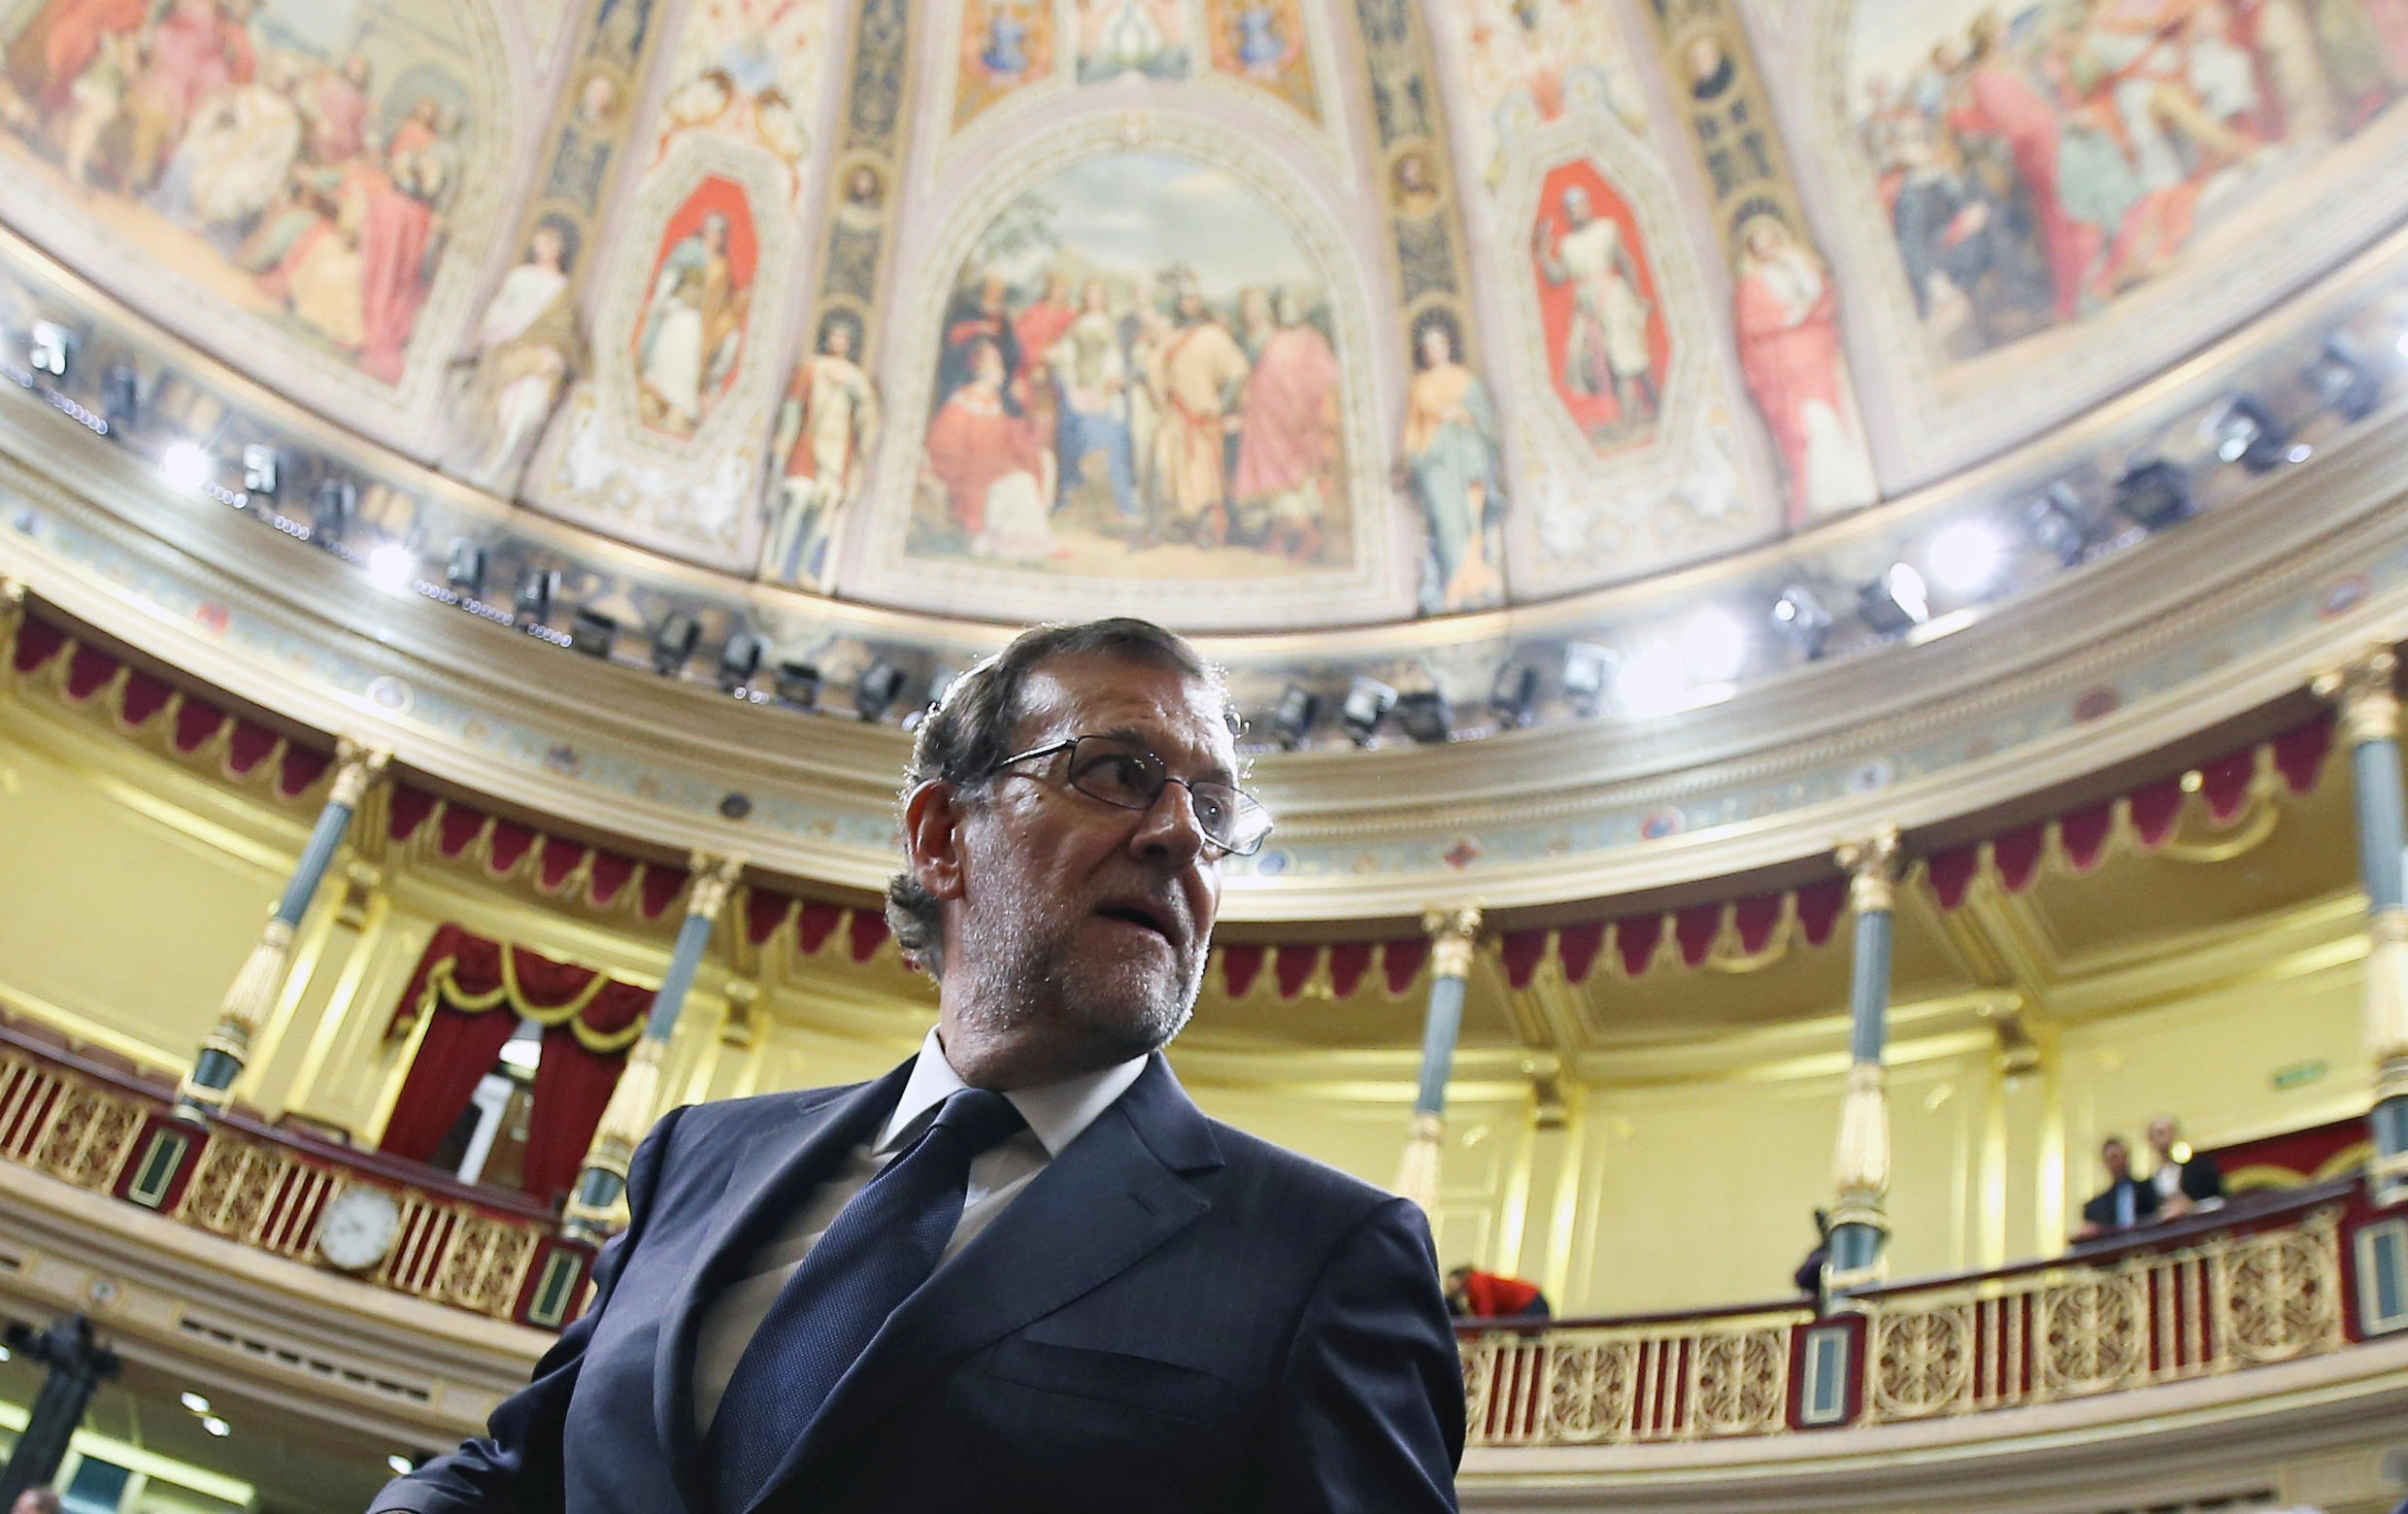 Spain's acting Prime Minister Mariano Rajoy looks back as he leaves his seat after the investiture debate at the Parliament in Madrid, Spain October 27, 2016.